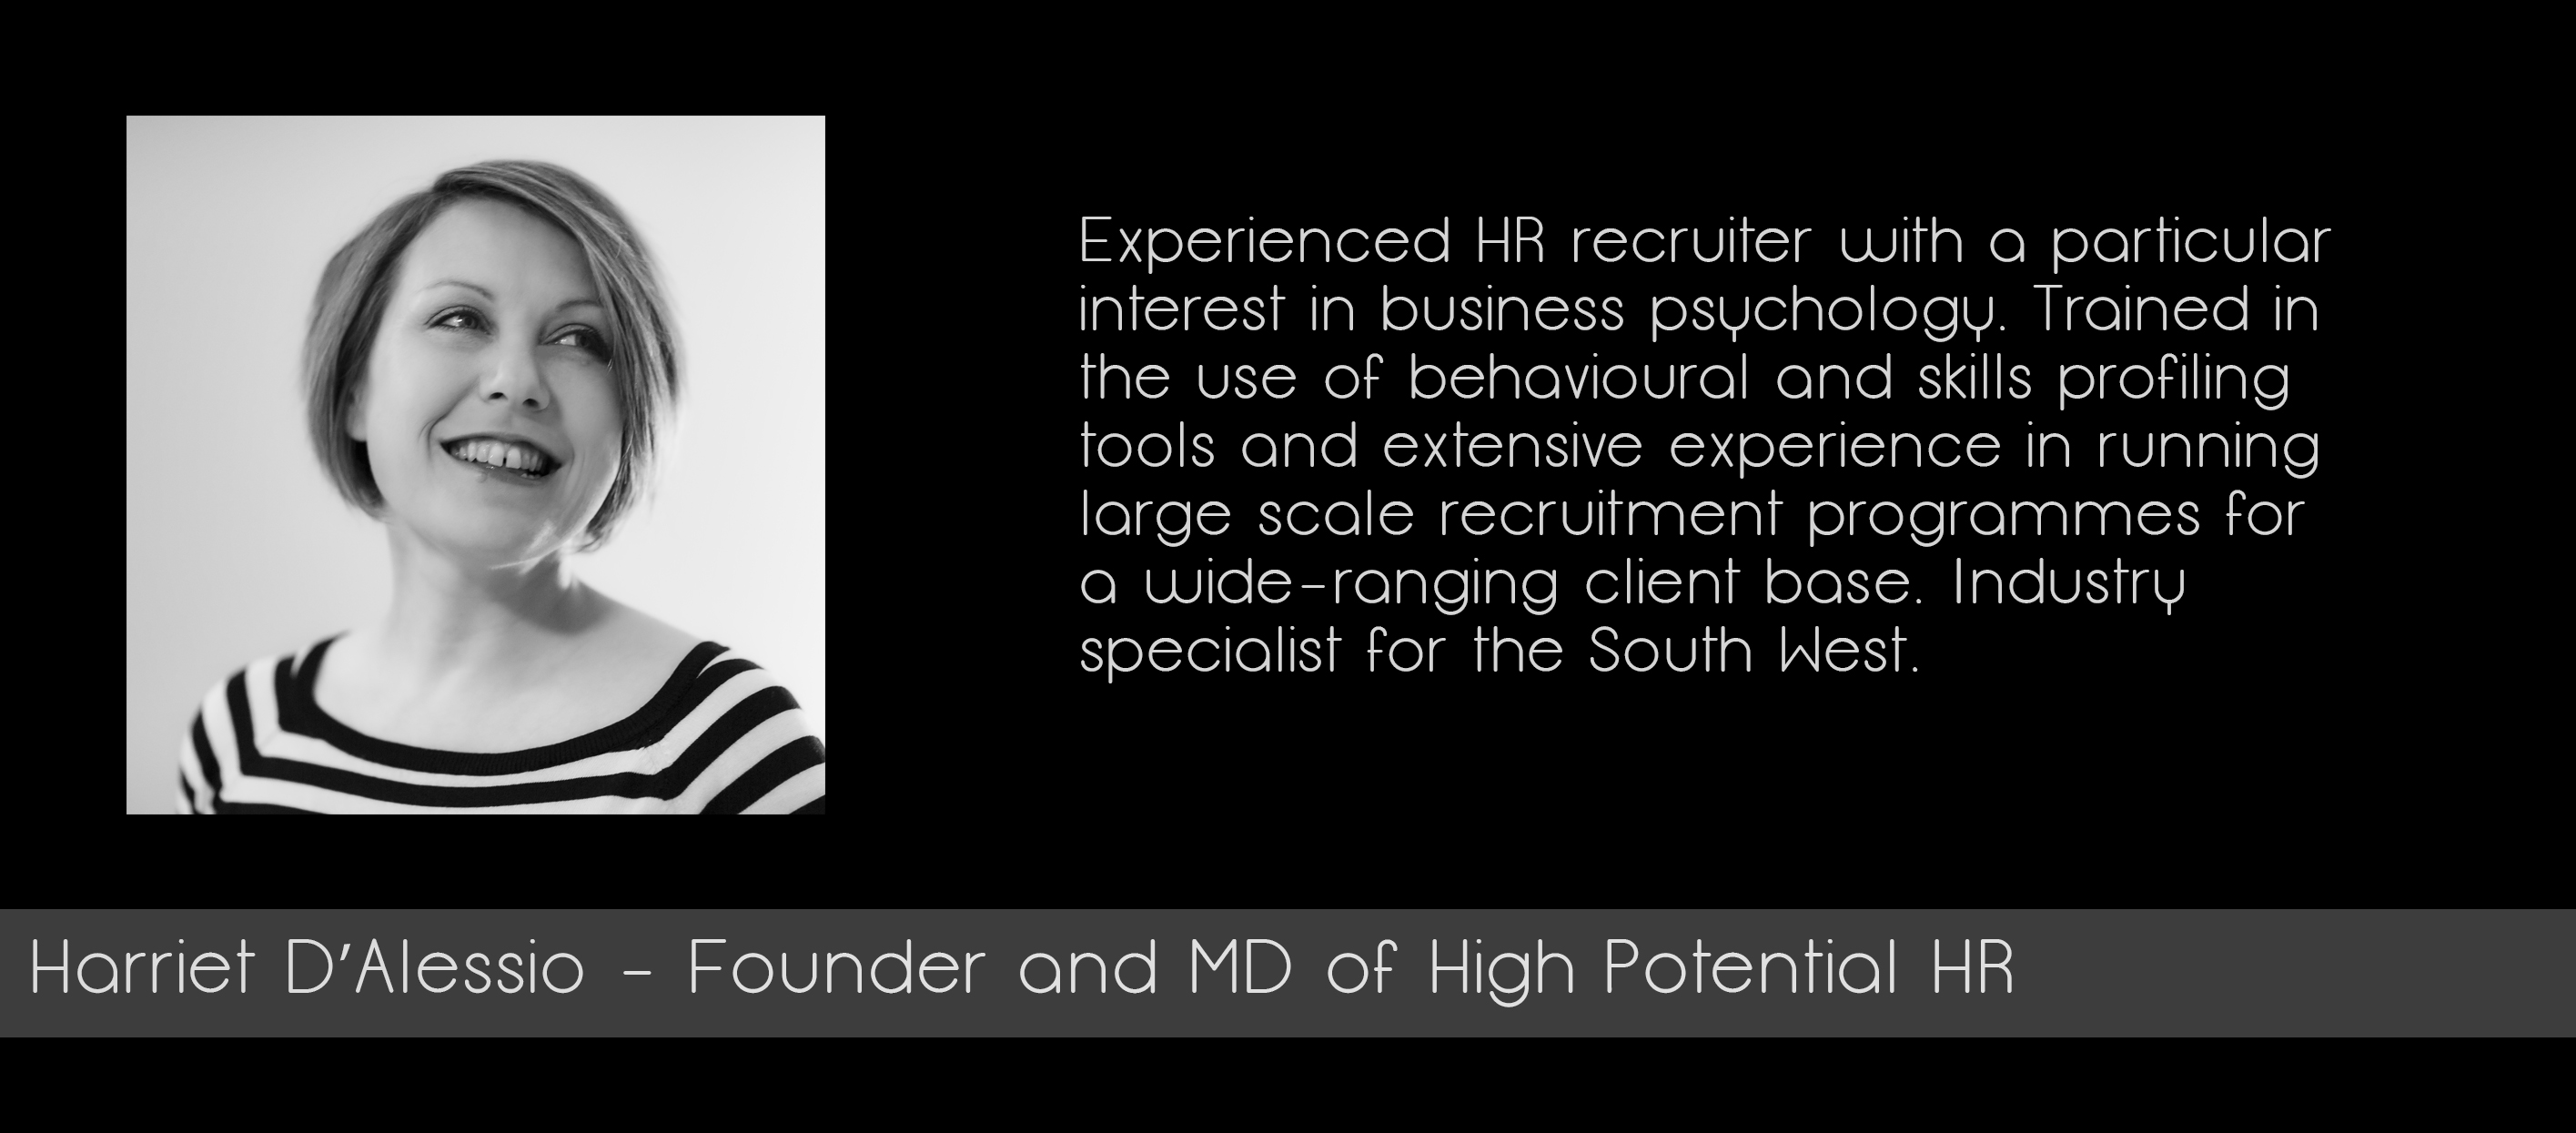 Profile photo of Harriet D'Alessio - Founder and MD of High Potential HR.